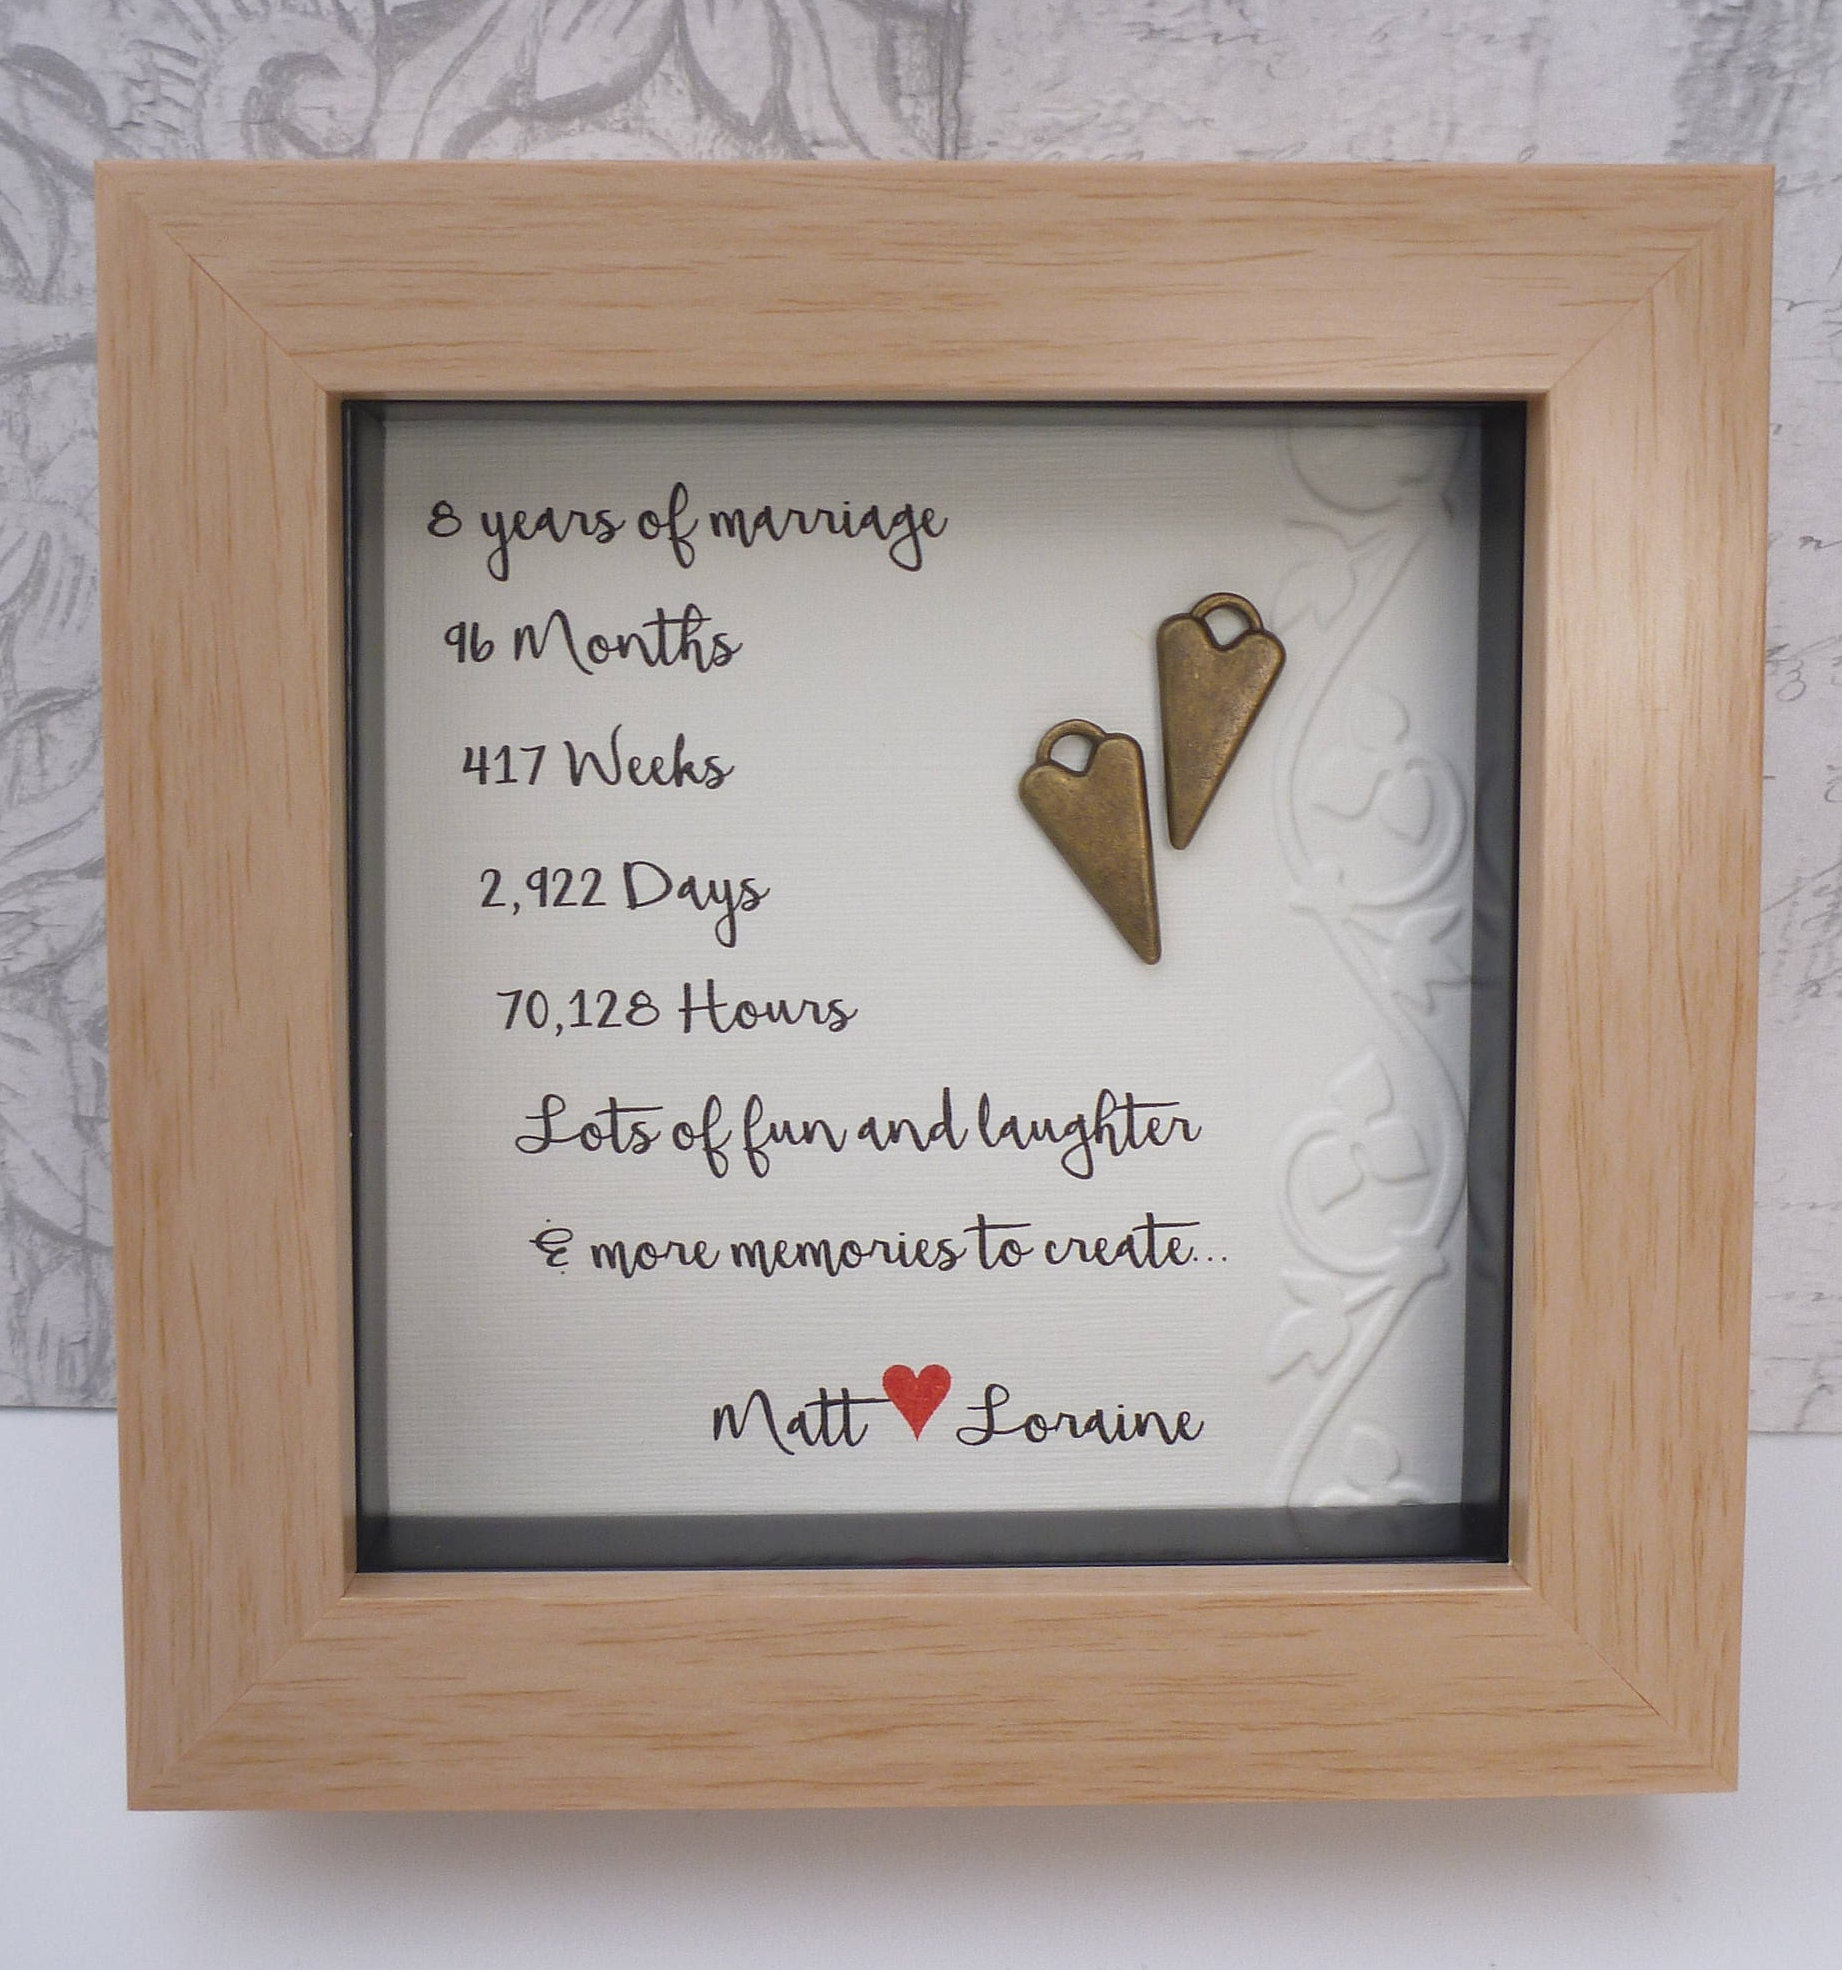 Gift Ideas For 8th Wedding Anniversary: 8th Wedding Anniversary Gift 8th Bronze Anniversary Bronze